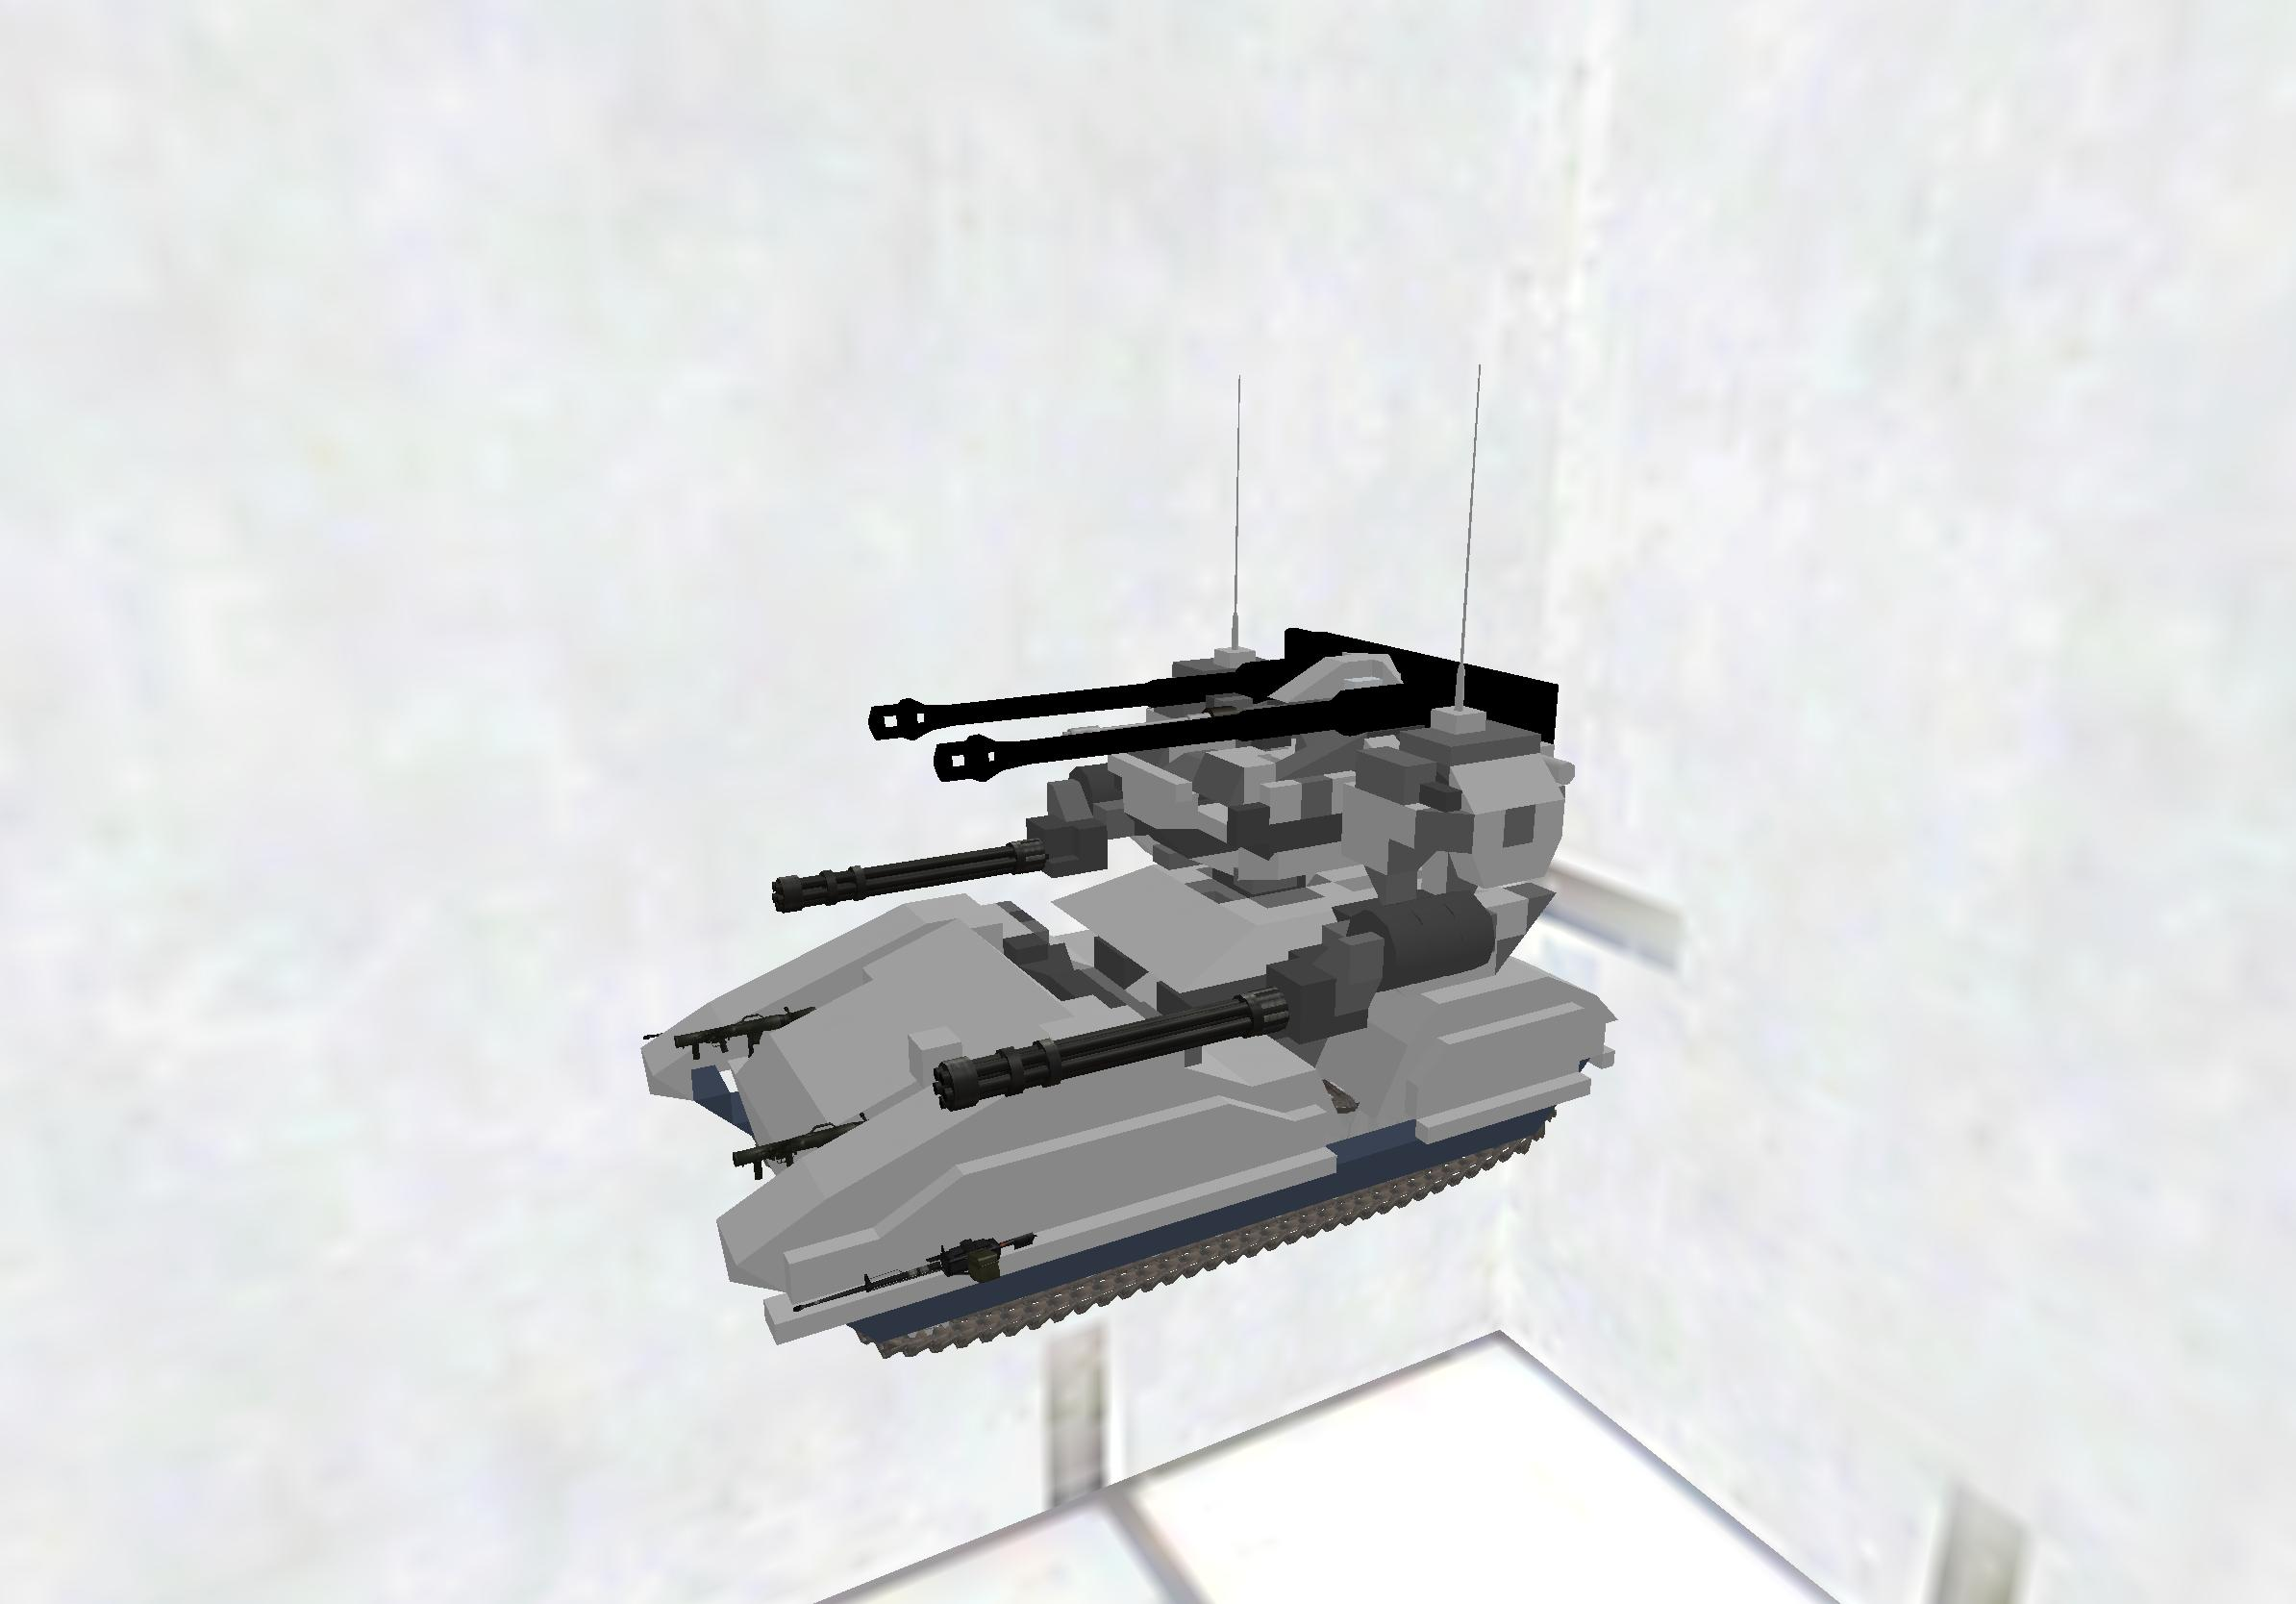 armored mobile tank「武器あり」